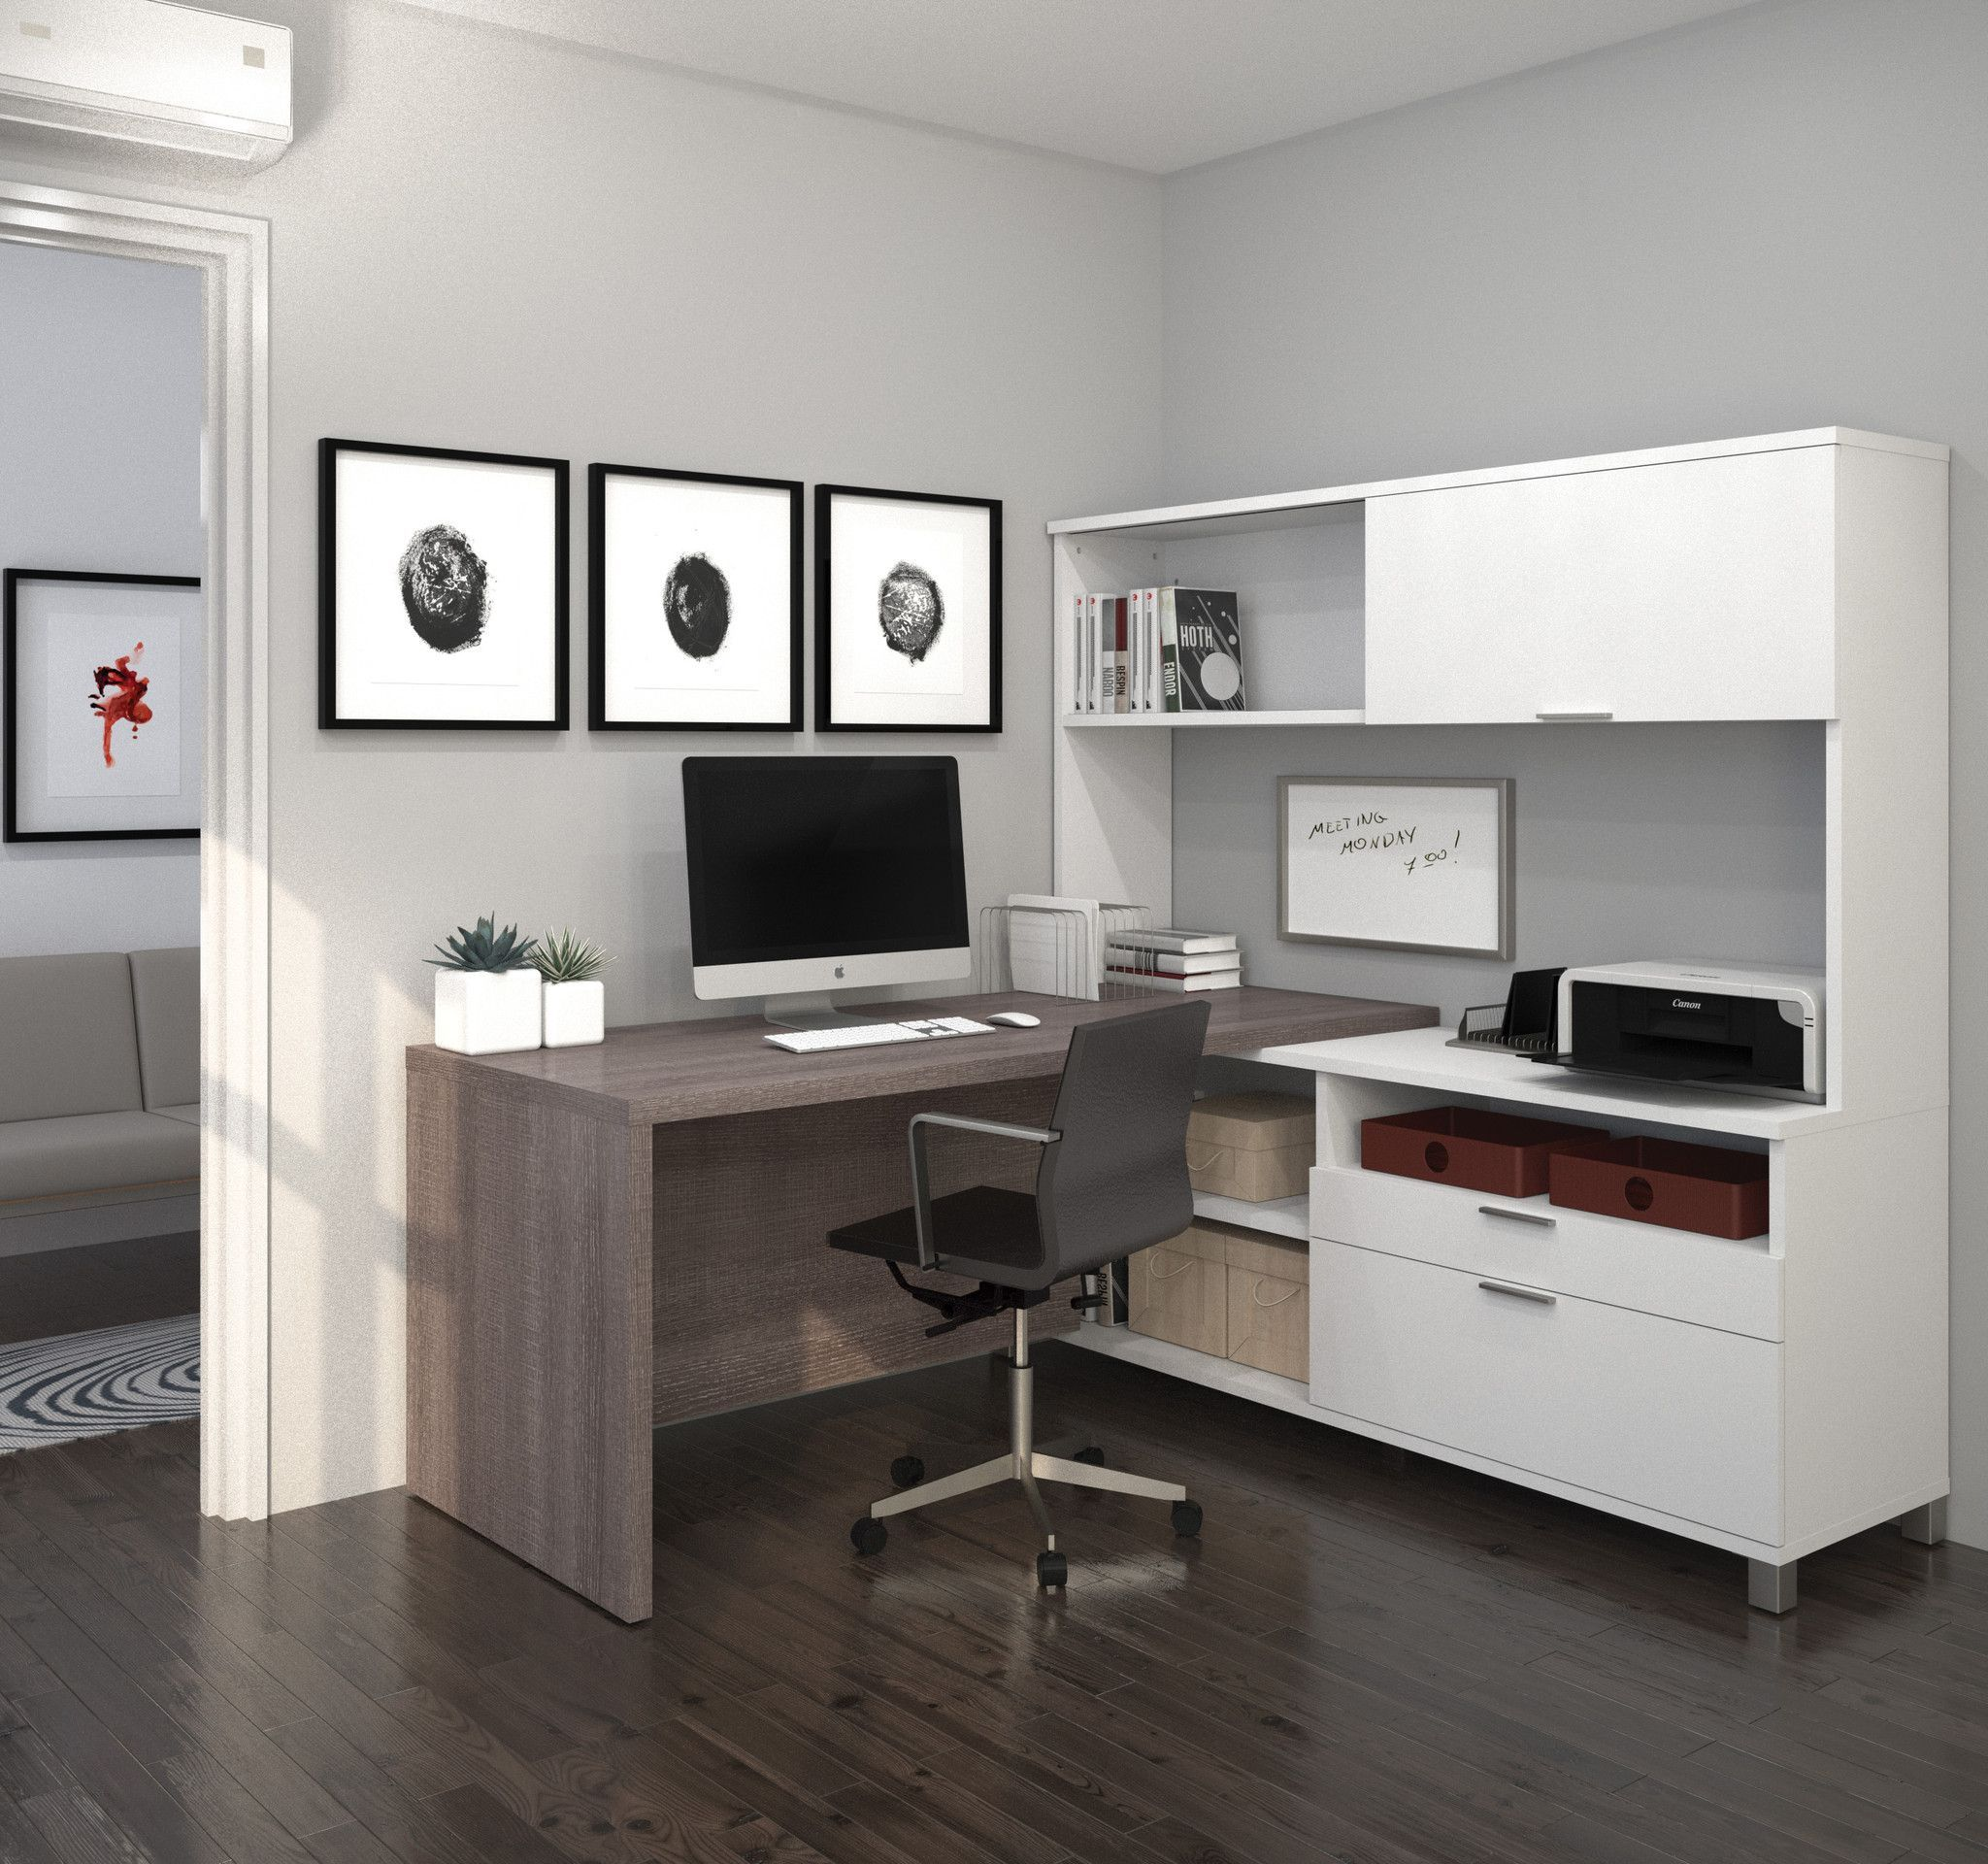 Bark Gray White 71 X 71 L Shaped Desk With Built In Storage L Shaped Desk Home Office Design Modern L Shaped Desk